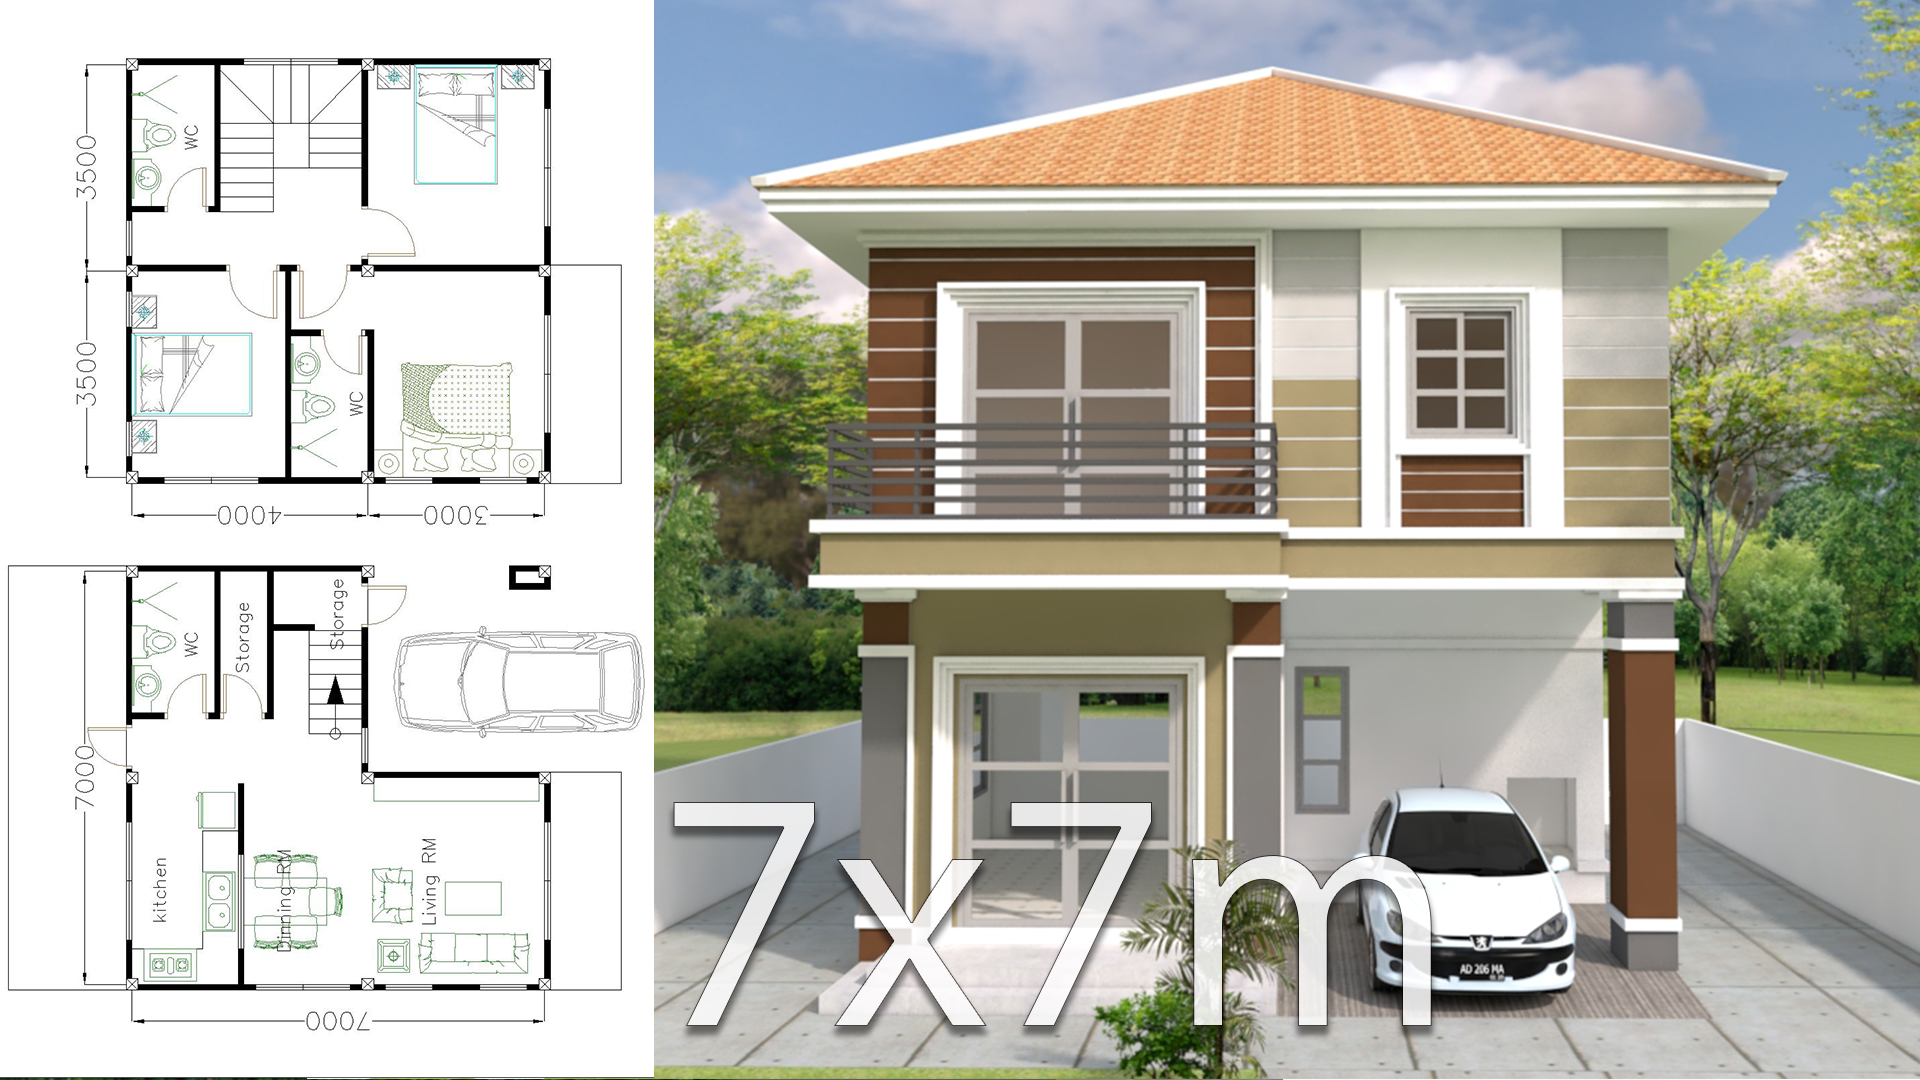 Home Design Plan 7x7m with 3 Bedrooms - 15+ Modern House 3 Bedroom House Floor Plans Single Story 3D PNG